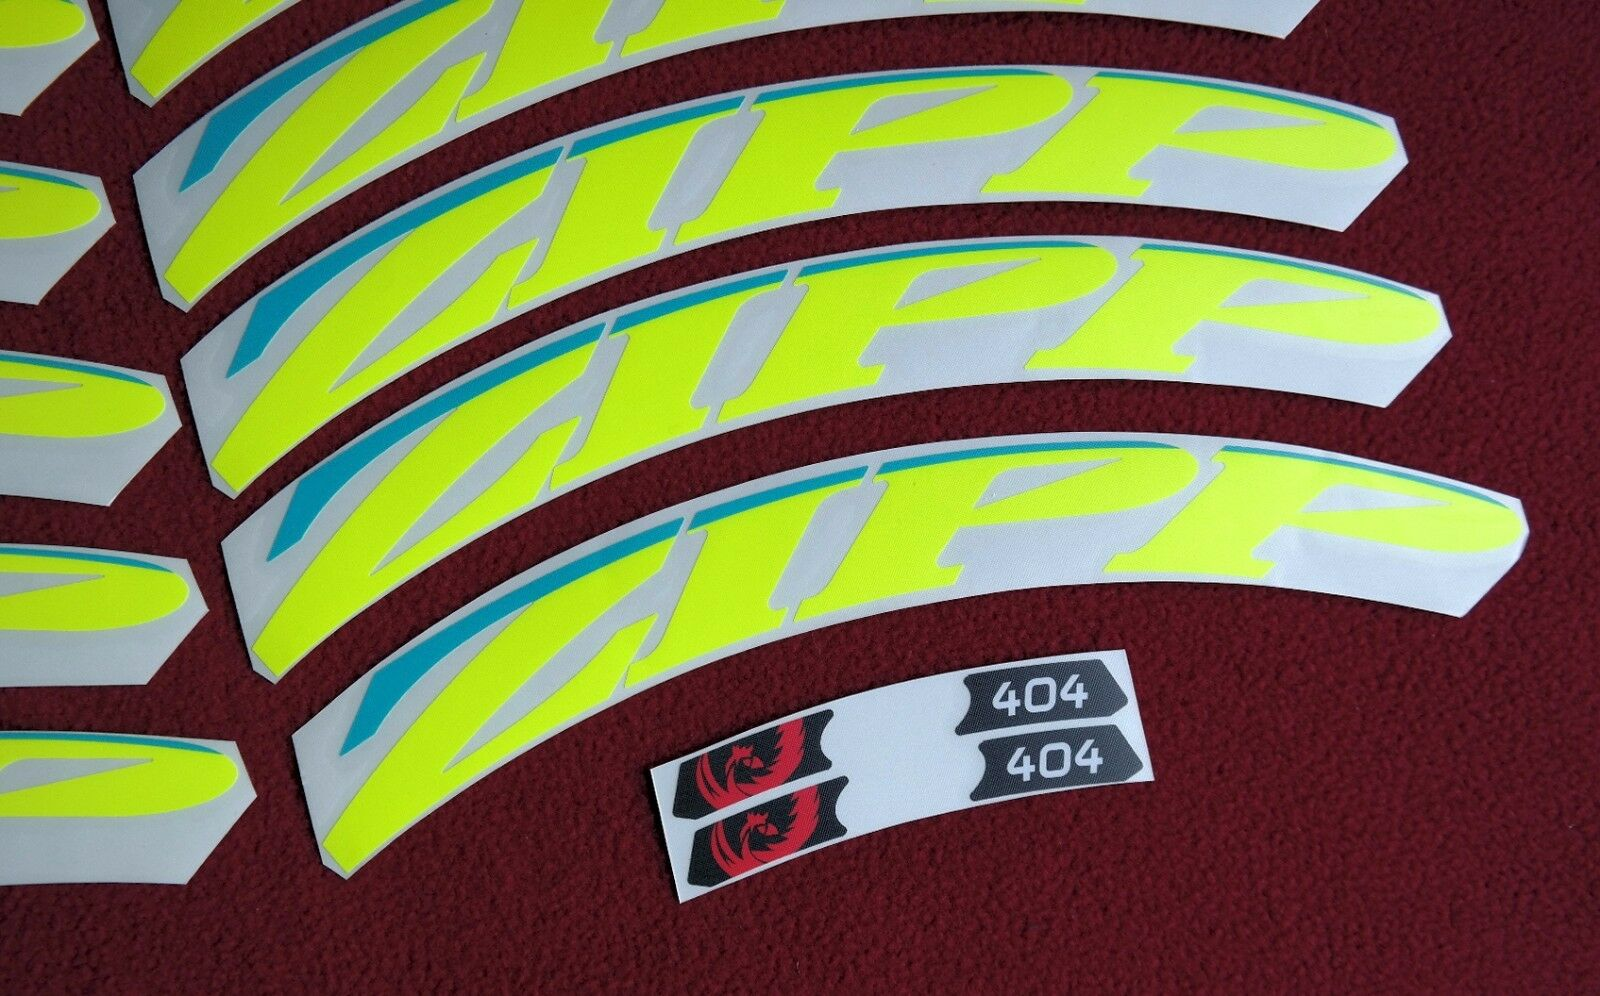 ZIPP  404  2015 FLUORYELLOW & GIANT blueE  REPLACEMENT RIM DECAL SET FOR 2 RIMS  welcome to choose